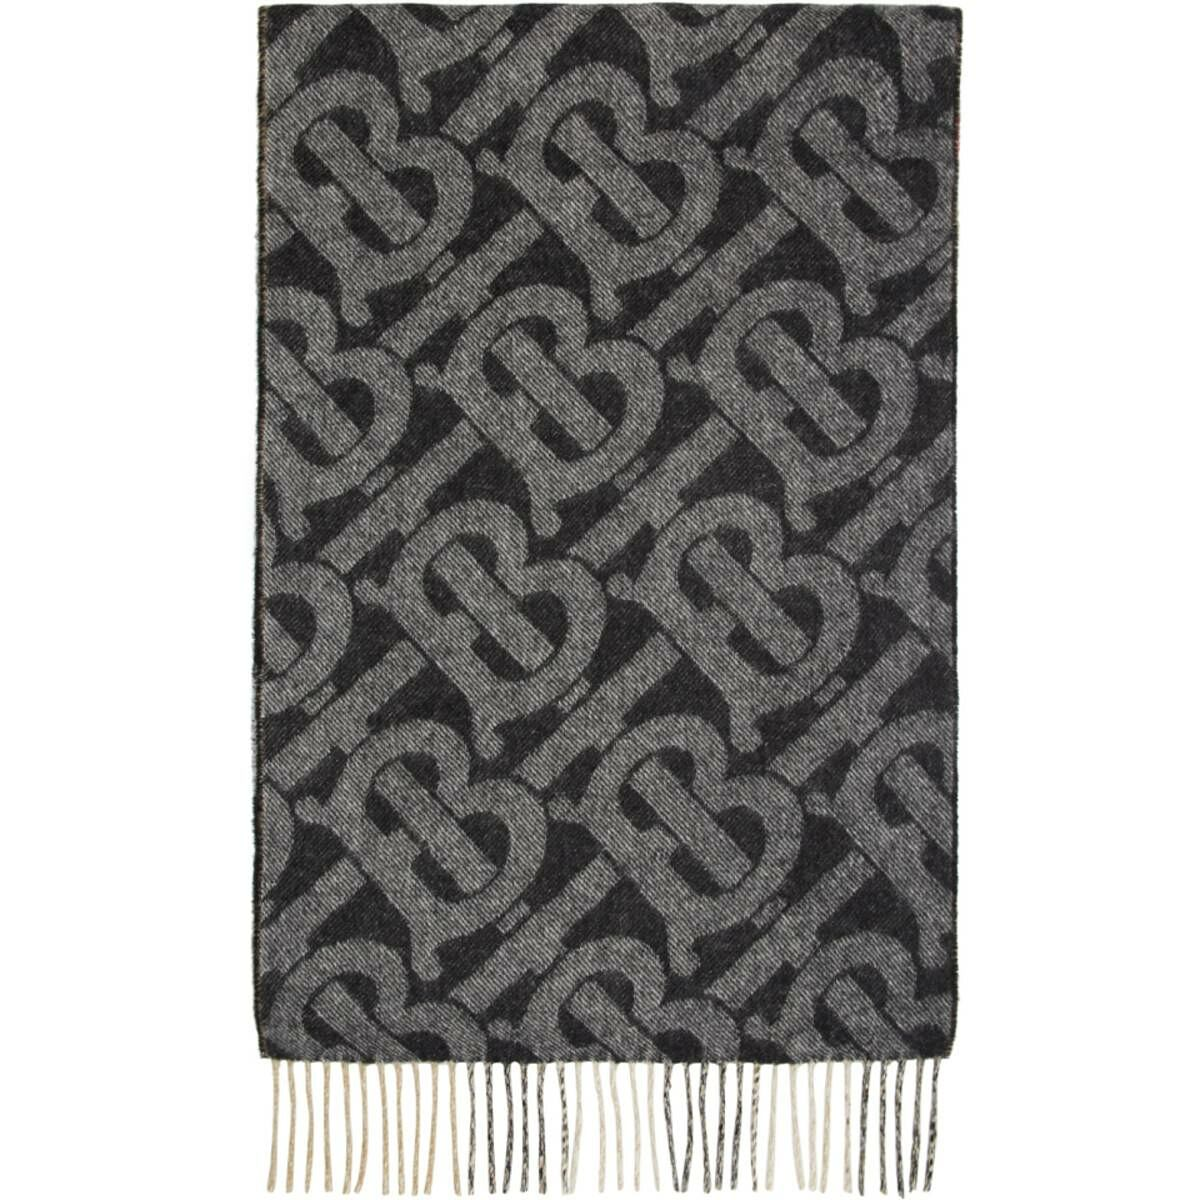 Burberry Reversible Black Cashmere Mega Check and Monogram Scarf Ssense USA MEN Men ACCESSORIES Mens SCARFS